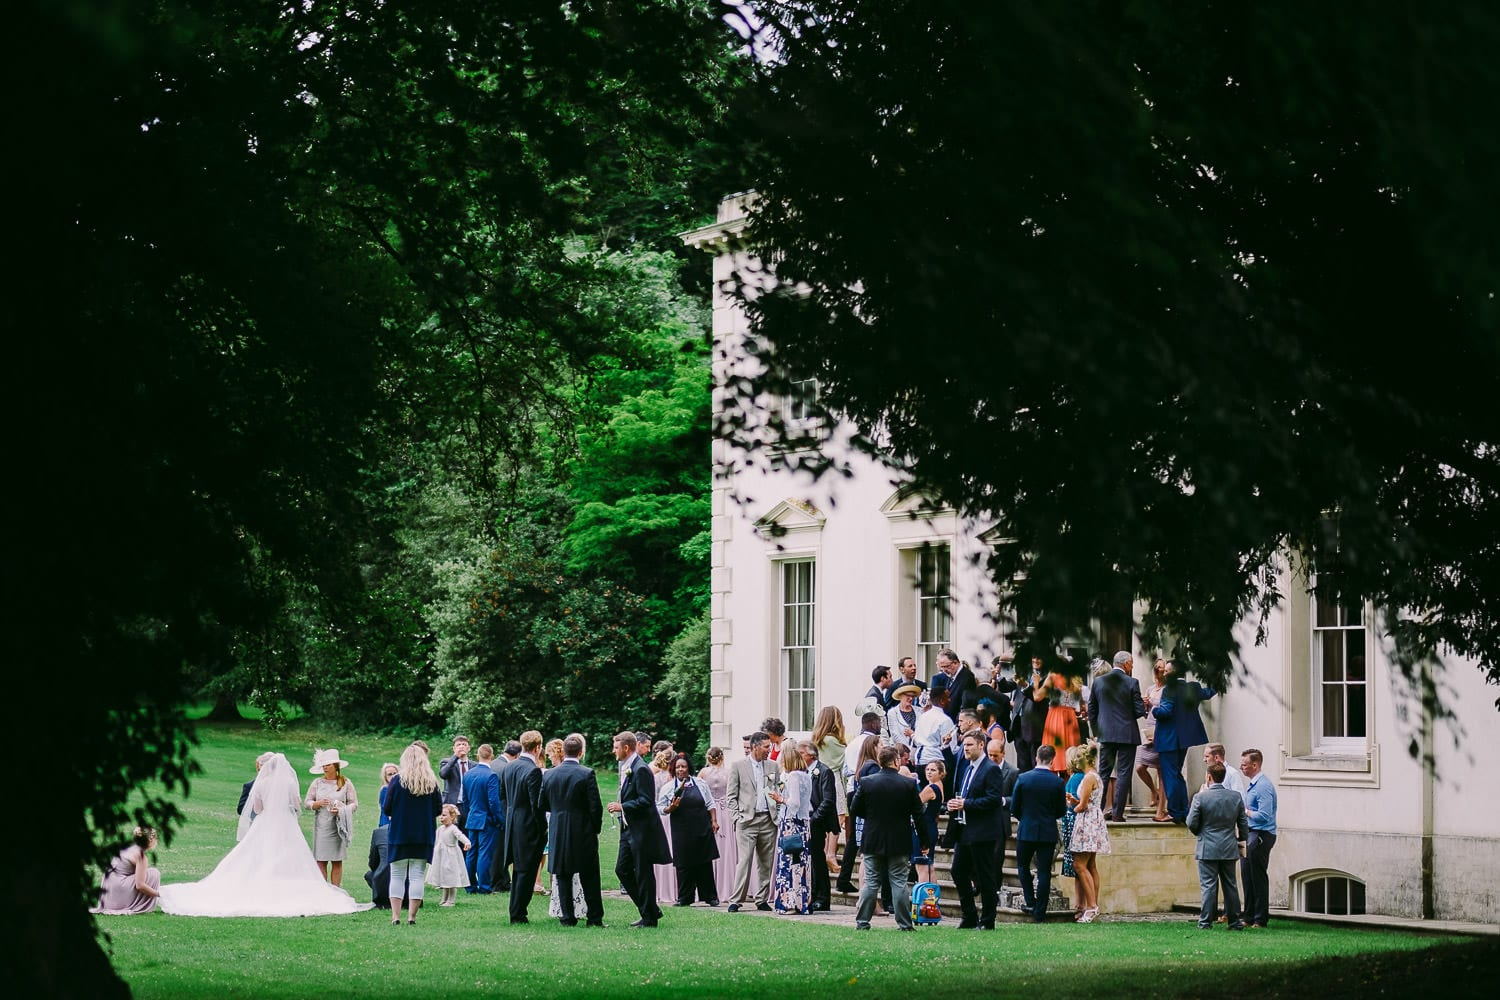 guests on the lawn outside Rockley Manor near Marlborough